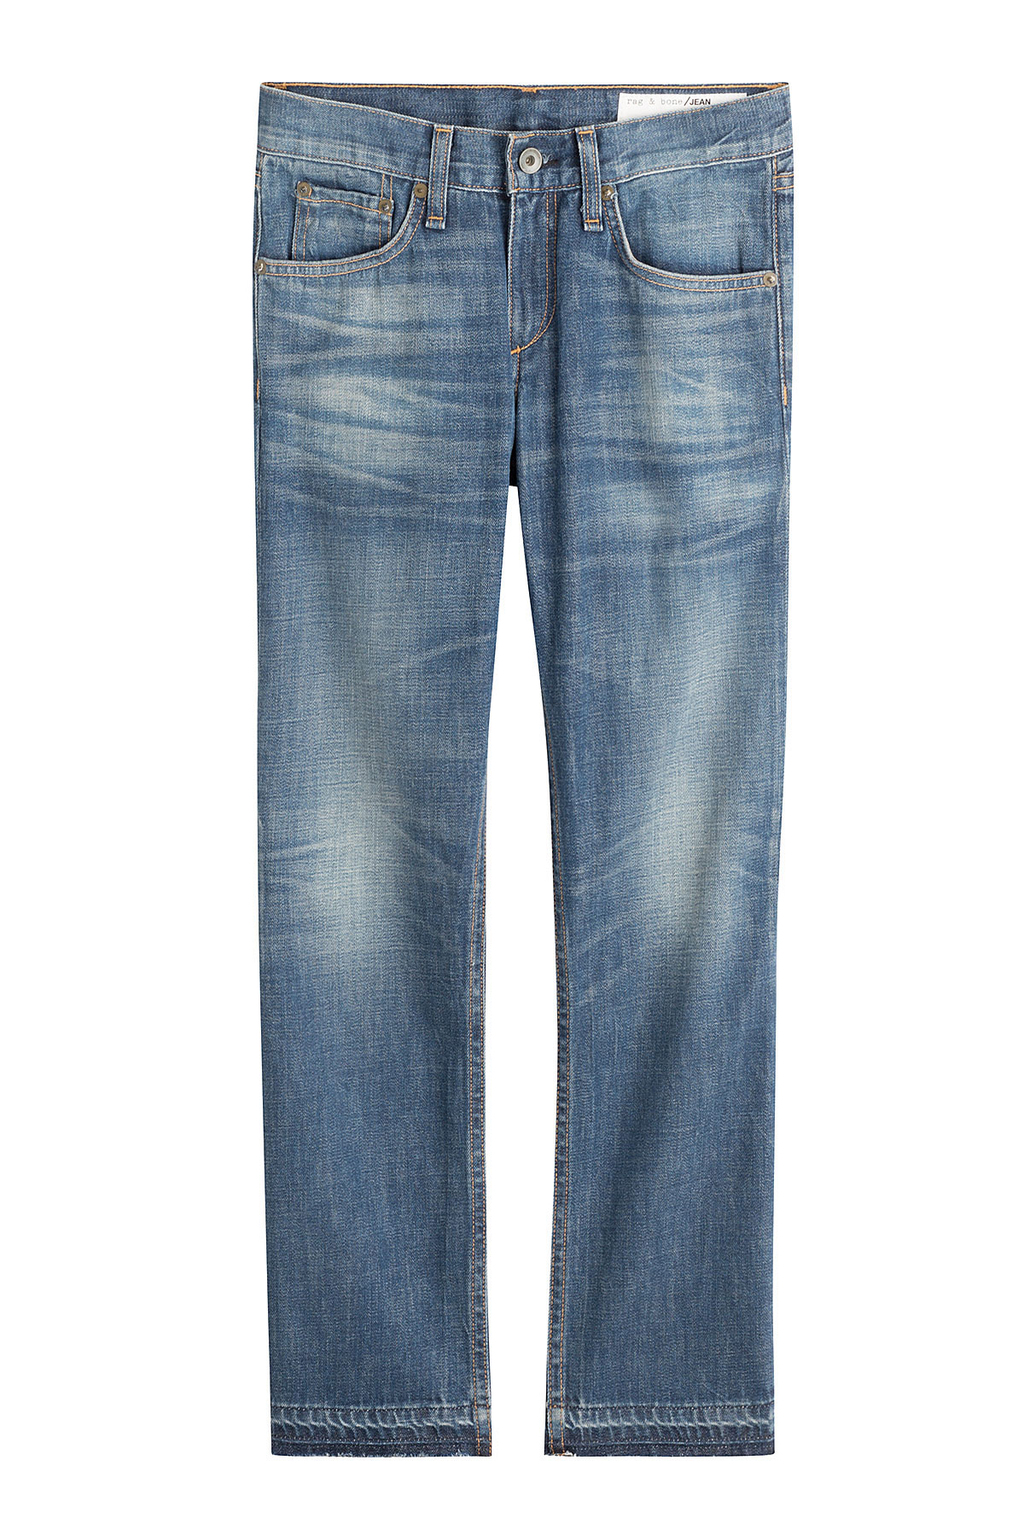 Cropped Skinny Jeans - style: boyfriend; pattern: plain; pocket detail: traditional 5 pocket; waist: mid/regular rise; predominant colour: denim; occasions: casual; length: calf length; fibres: cotton - 100%; jeans detail: whiskering, washed/faded; texture group: denim; pattern type: fabric; season: s/s 2016; wardrobe: basic